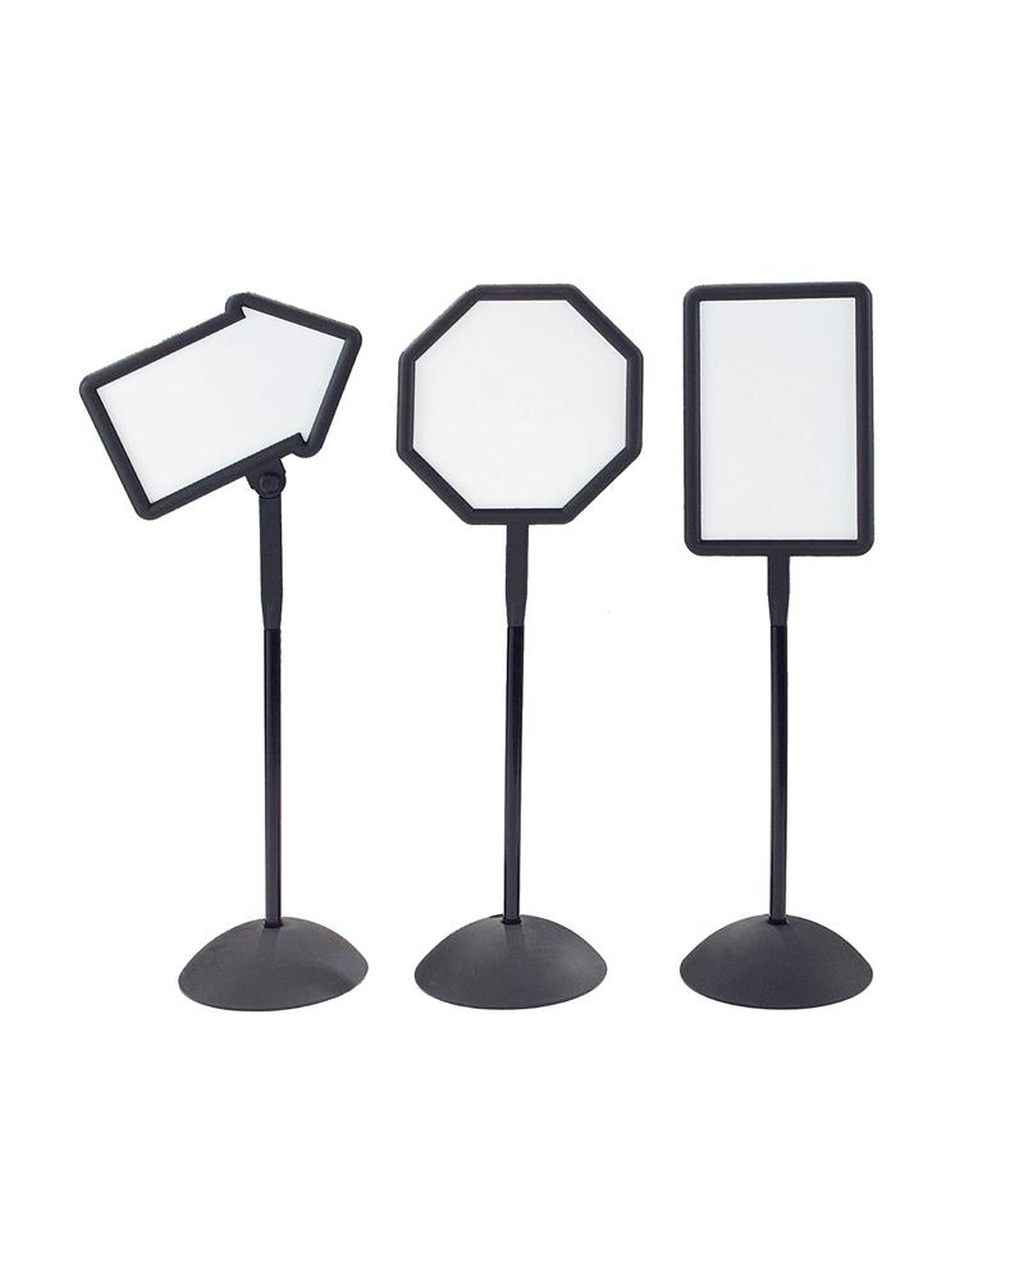 Freestanding Whiteboard Signs Octagon